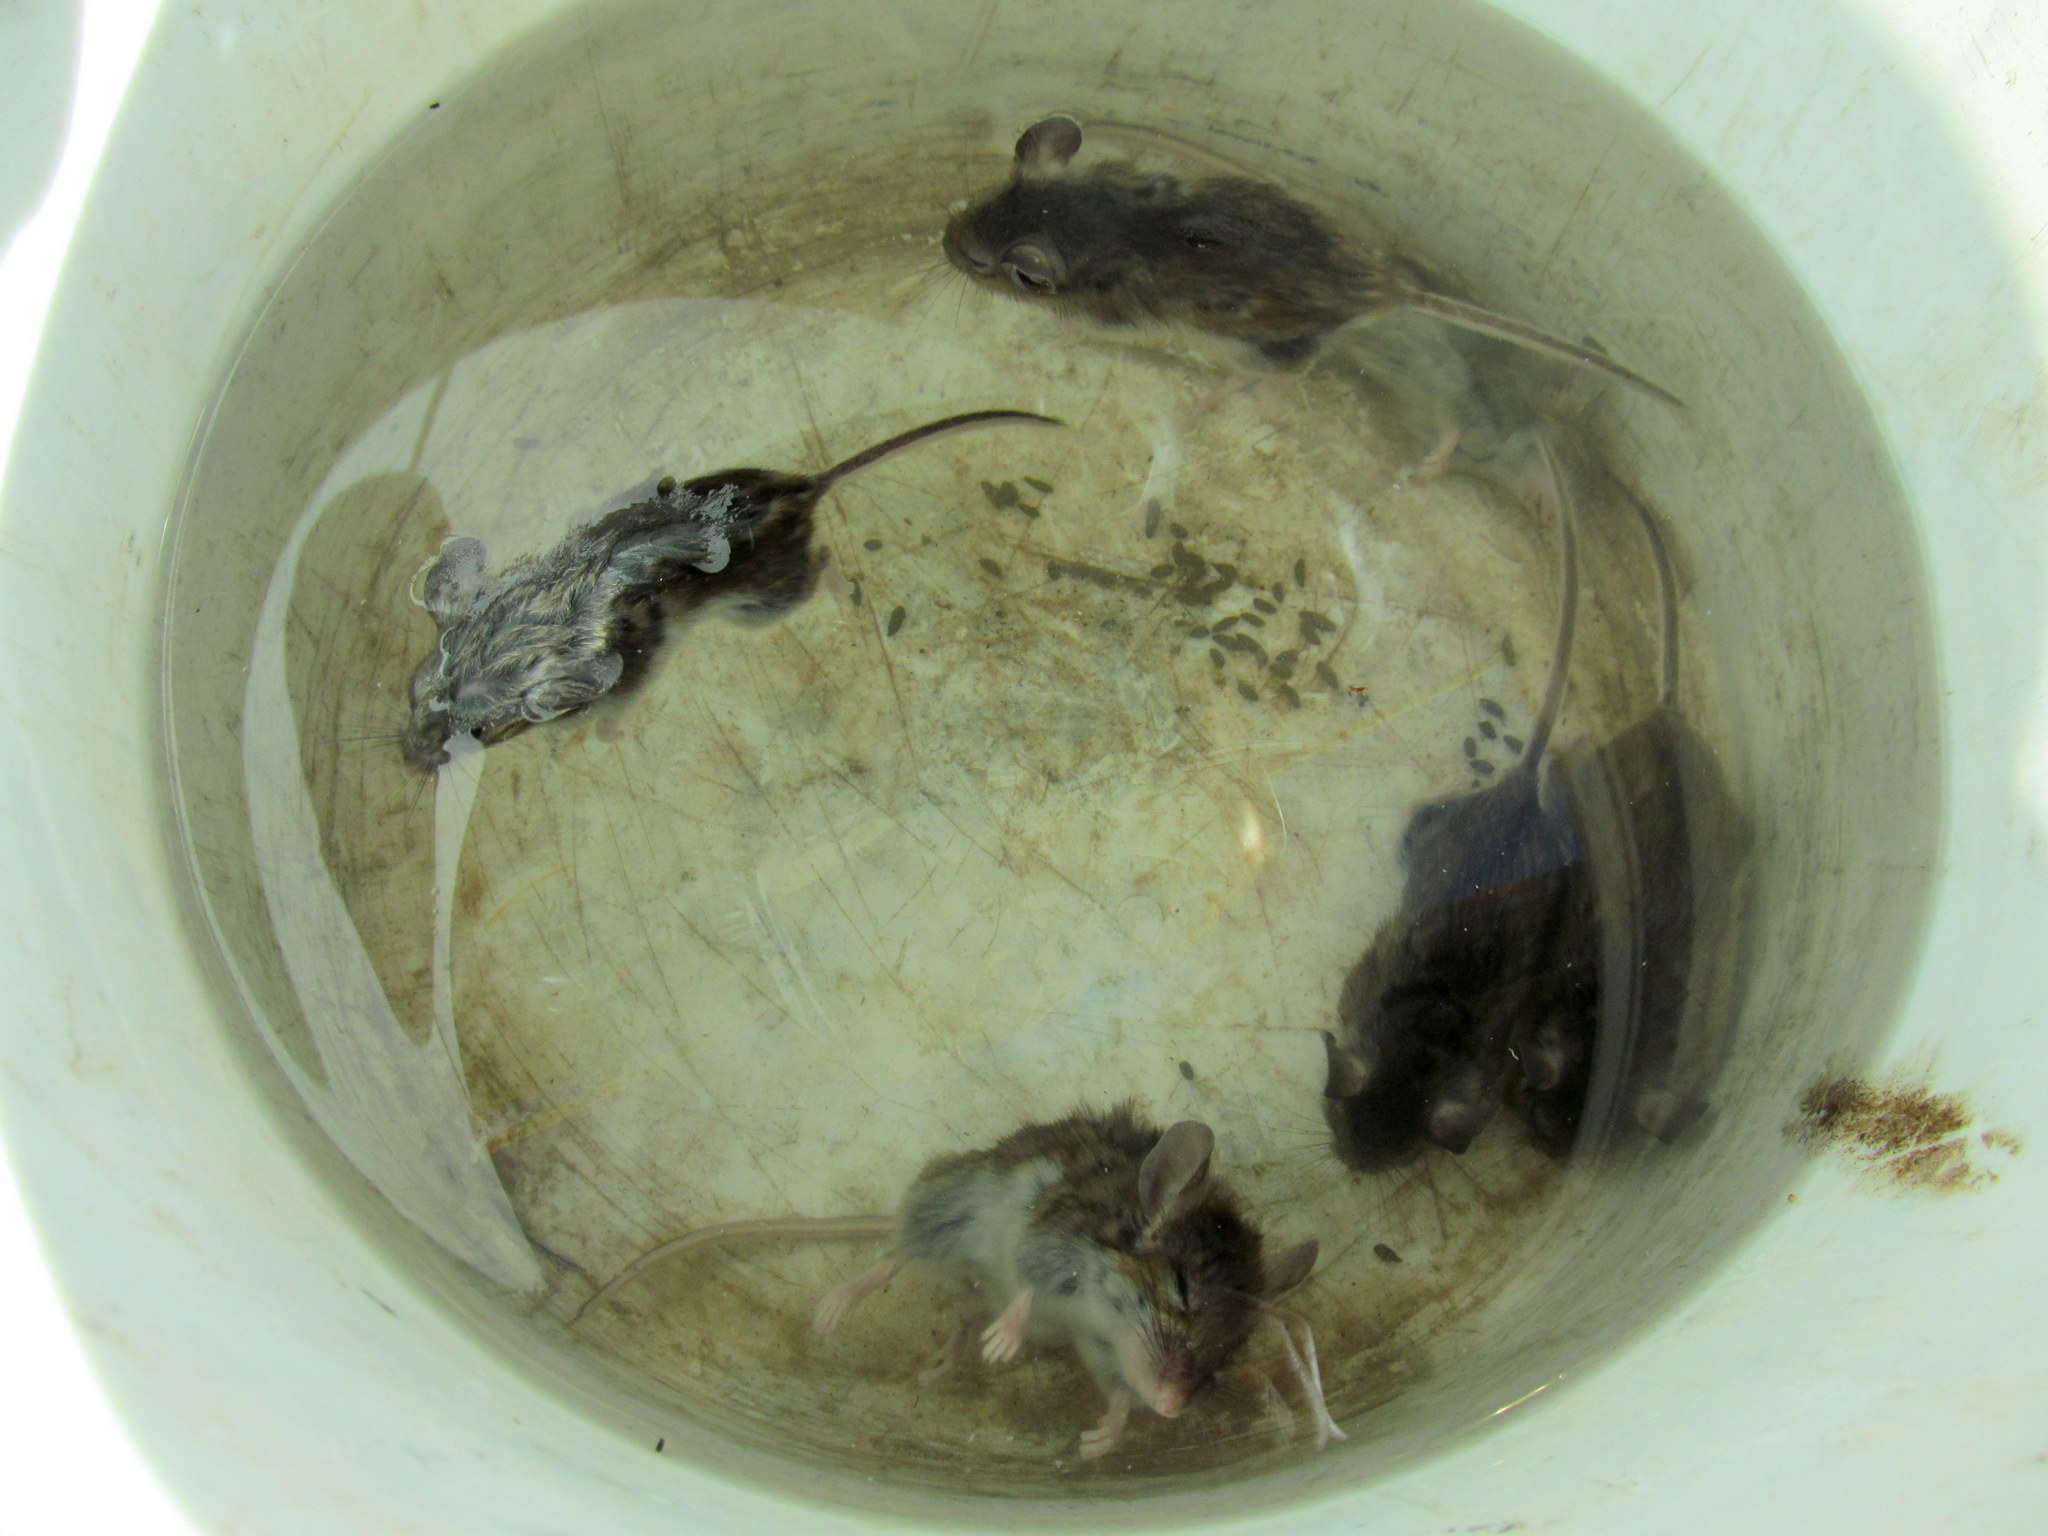 Photo: Six dead mice